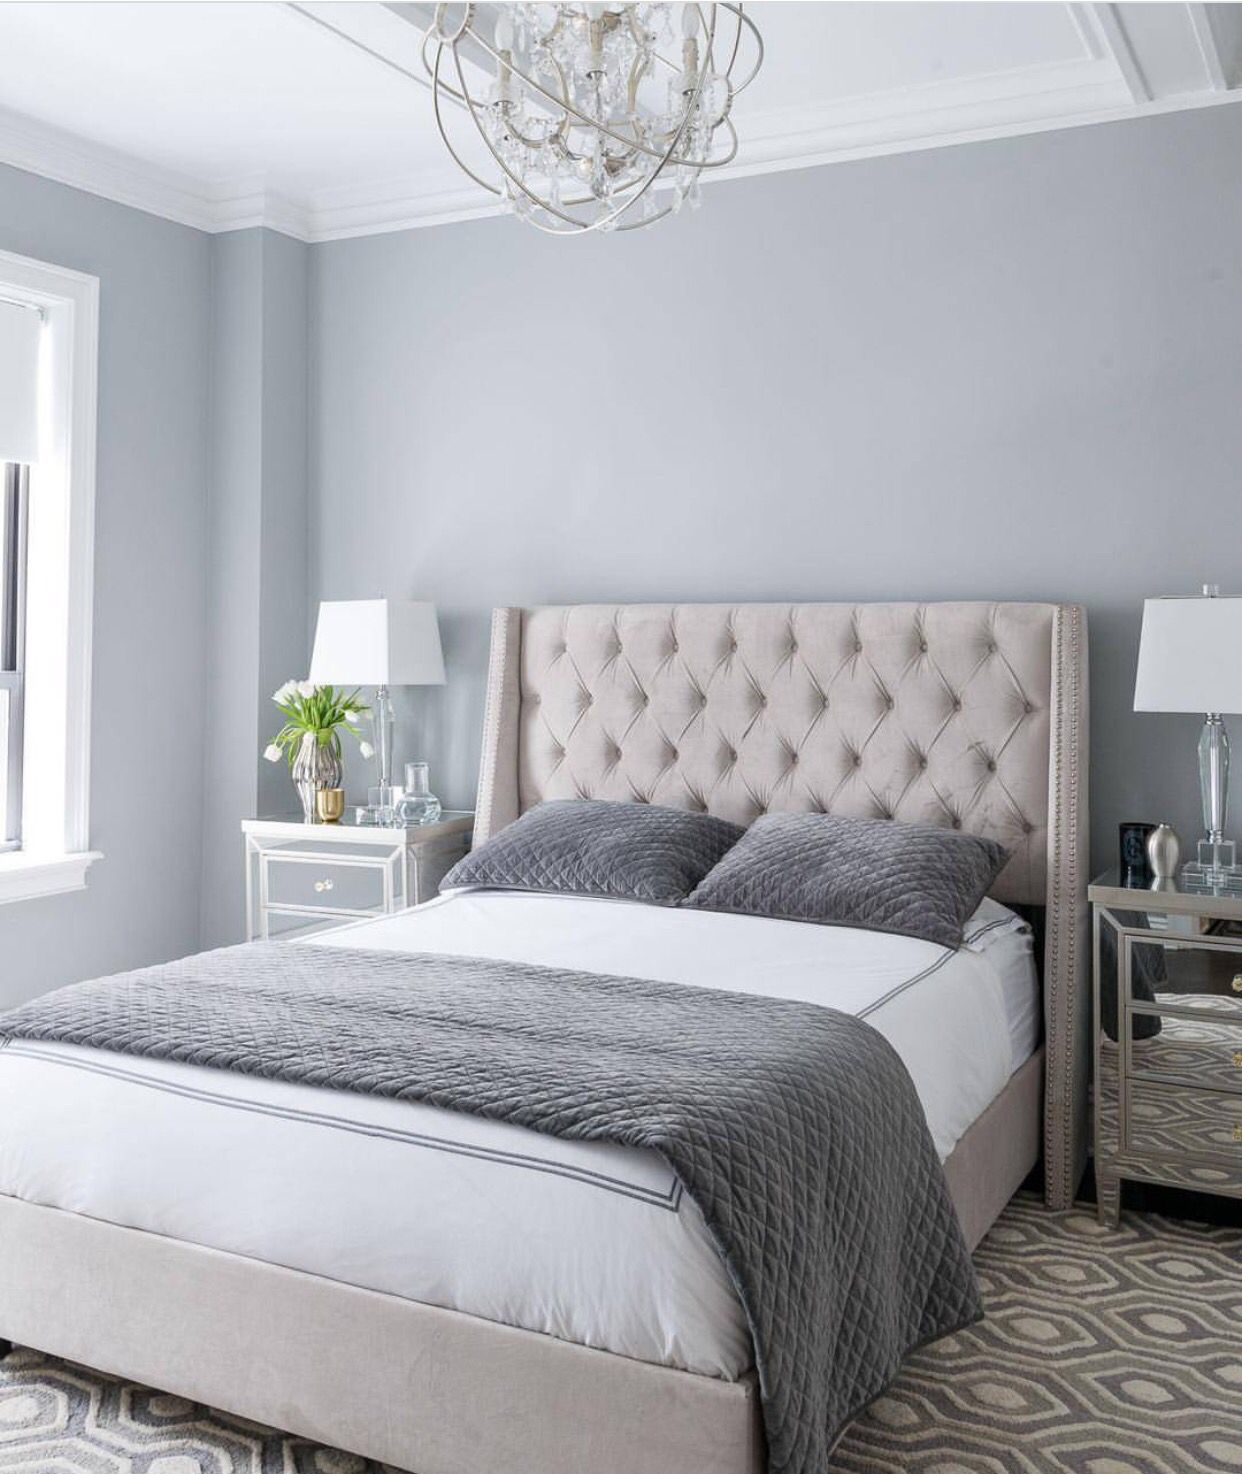 Master bedroom ideas grey  This appears to be subordination in its finest I canut say there is